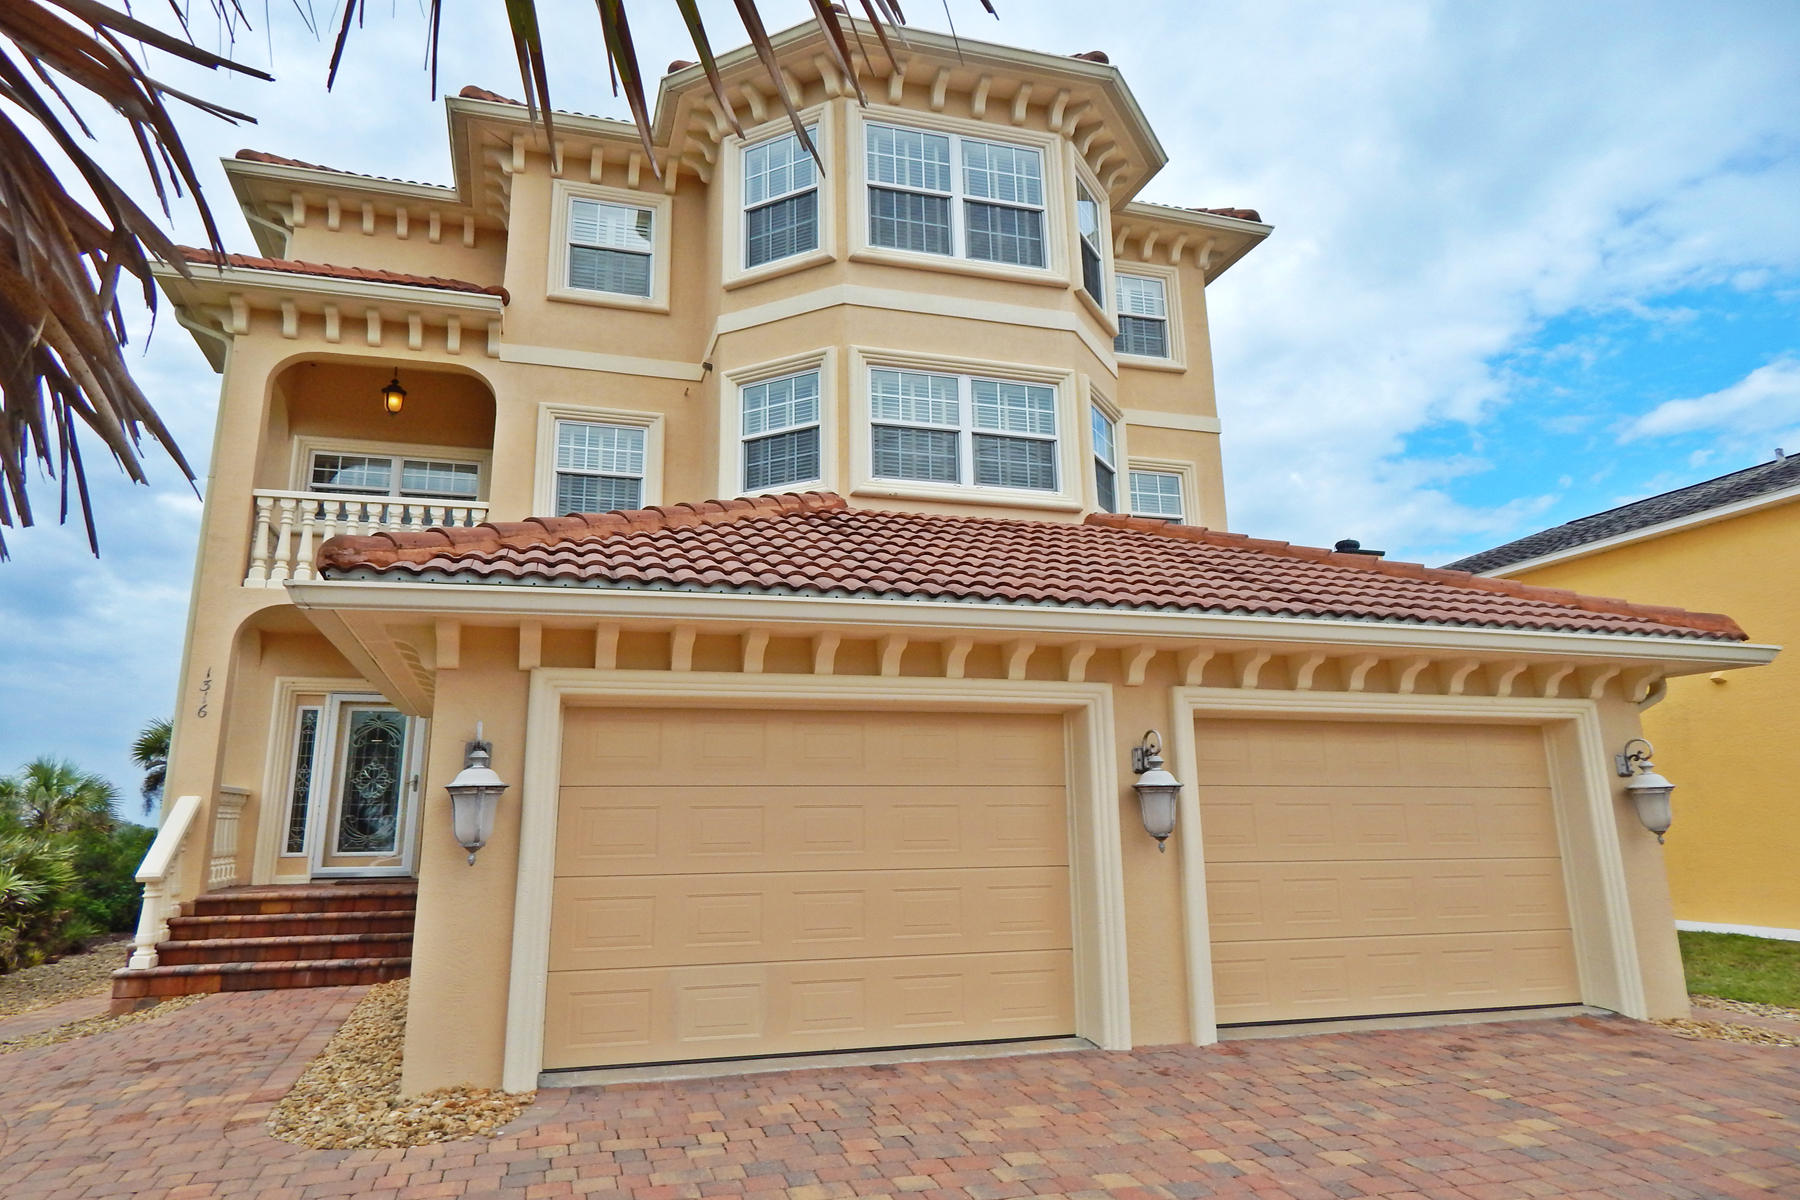 Single Family Home for Sale at Flagler Beach, Florida 1316 N Oceanshore Boulevard Blvd Flagler Beach, Florida 32136 United States